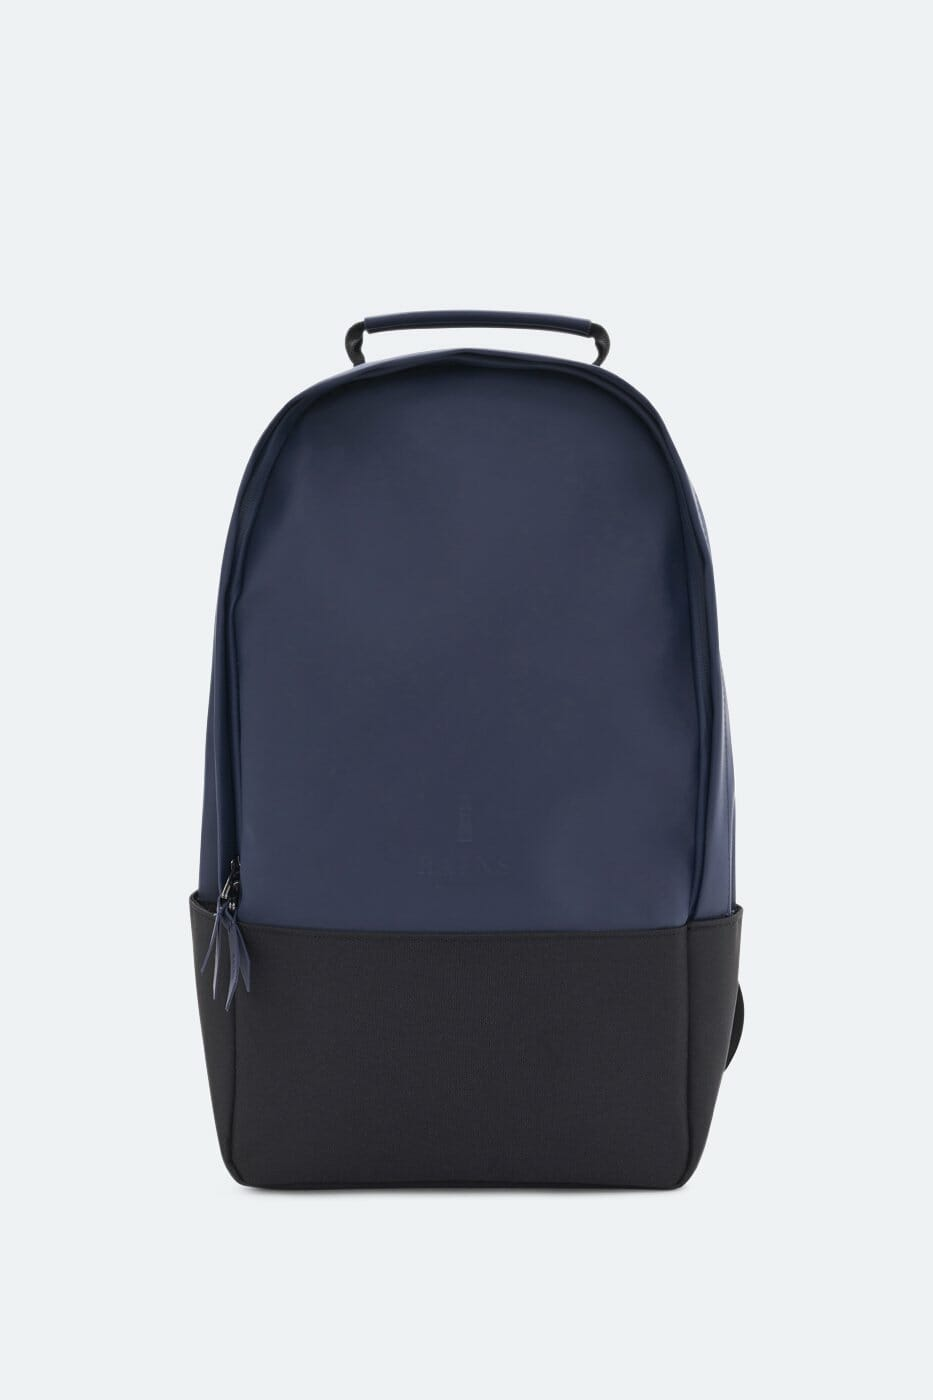 City_Backpack-Bags-1292-02_Blue-9_1400x1400